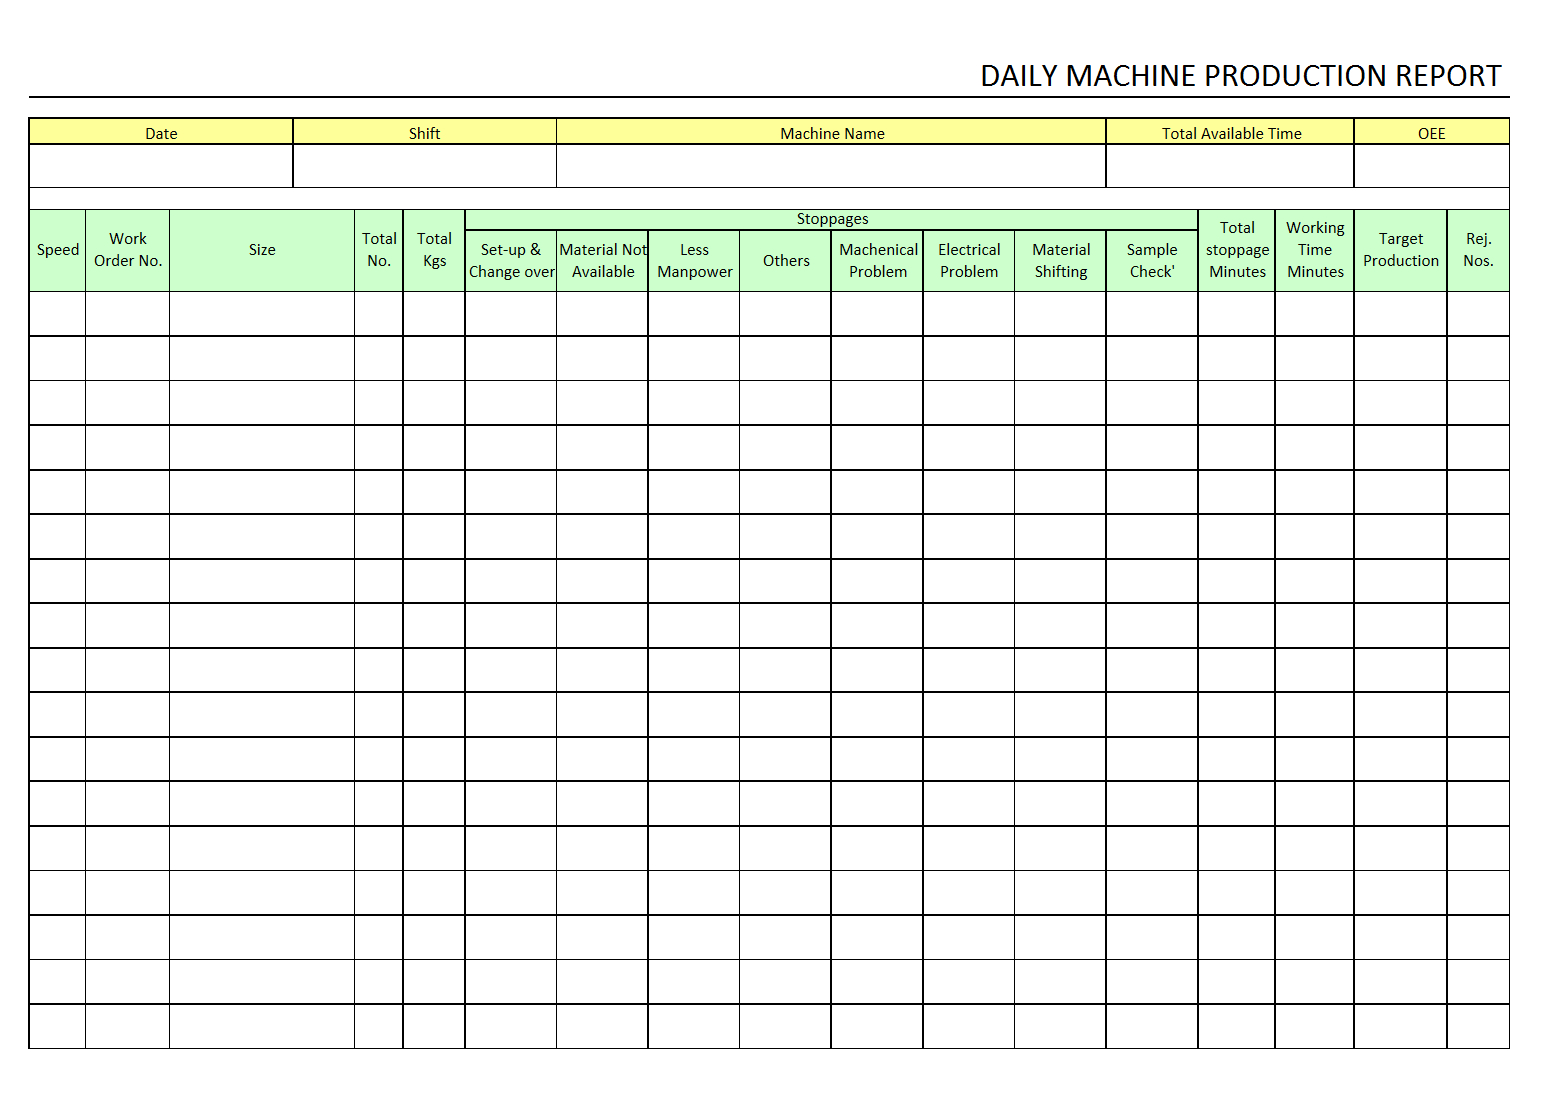 Daily Machine Production Report – Inside Machine Shop Inspection Report Template